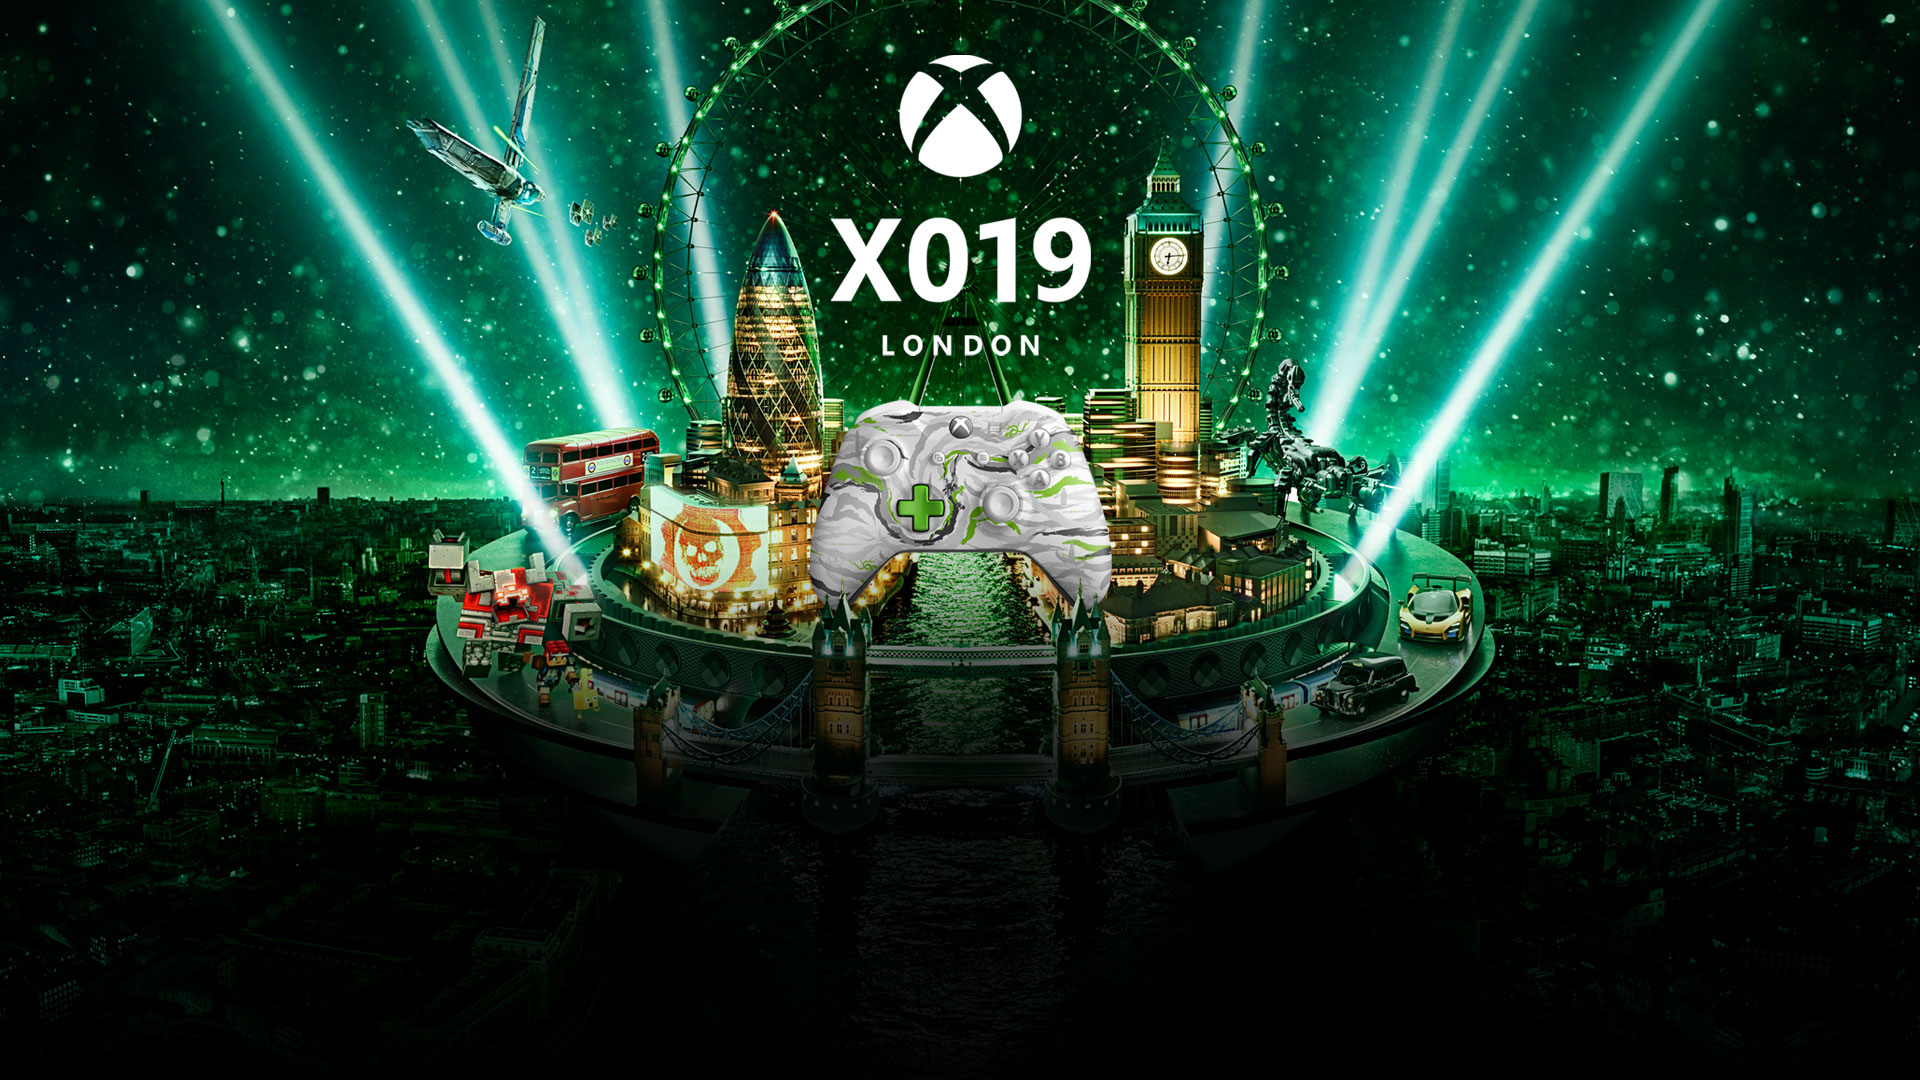 X019 London, a green-tinted image of London's cityscape with multiple game characters walking on a street with an xbox controller in the middle